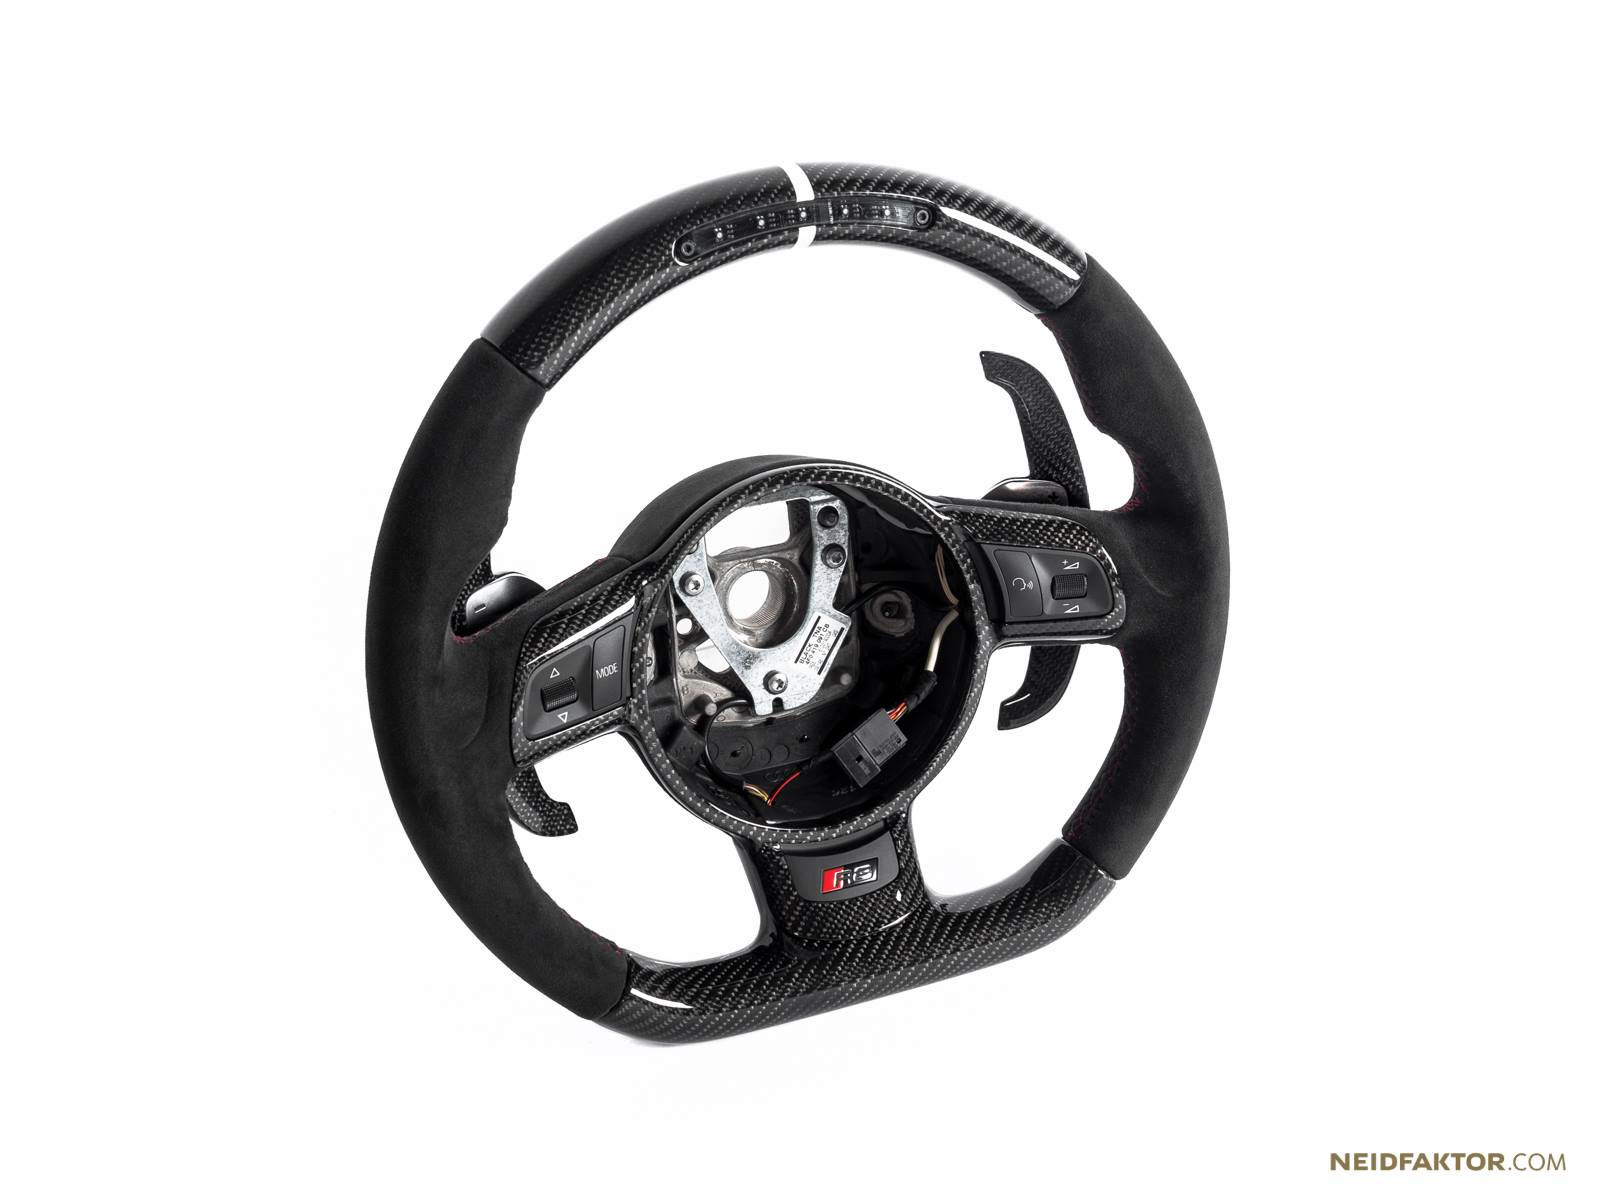 Audi R Steering Wheels Tuned By Neidfaktor With Carbon Fiber